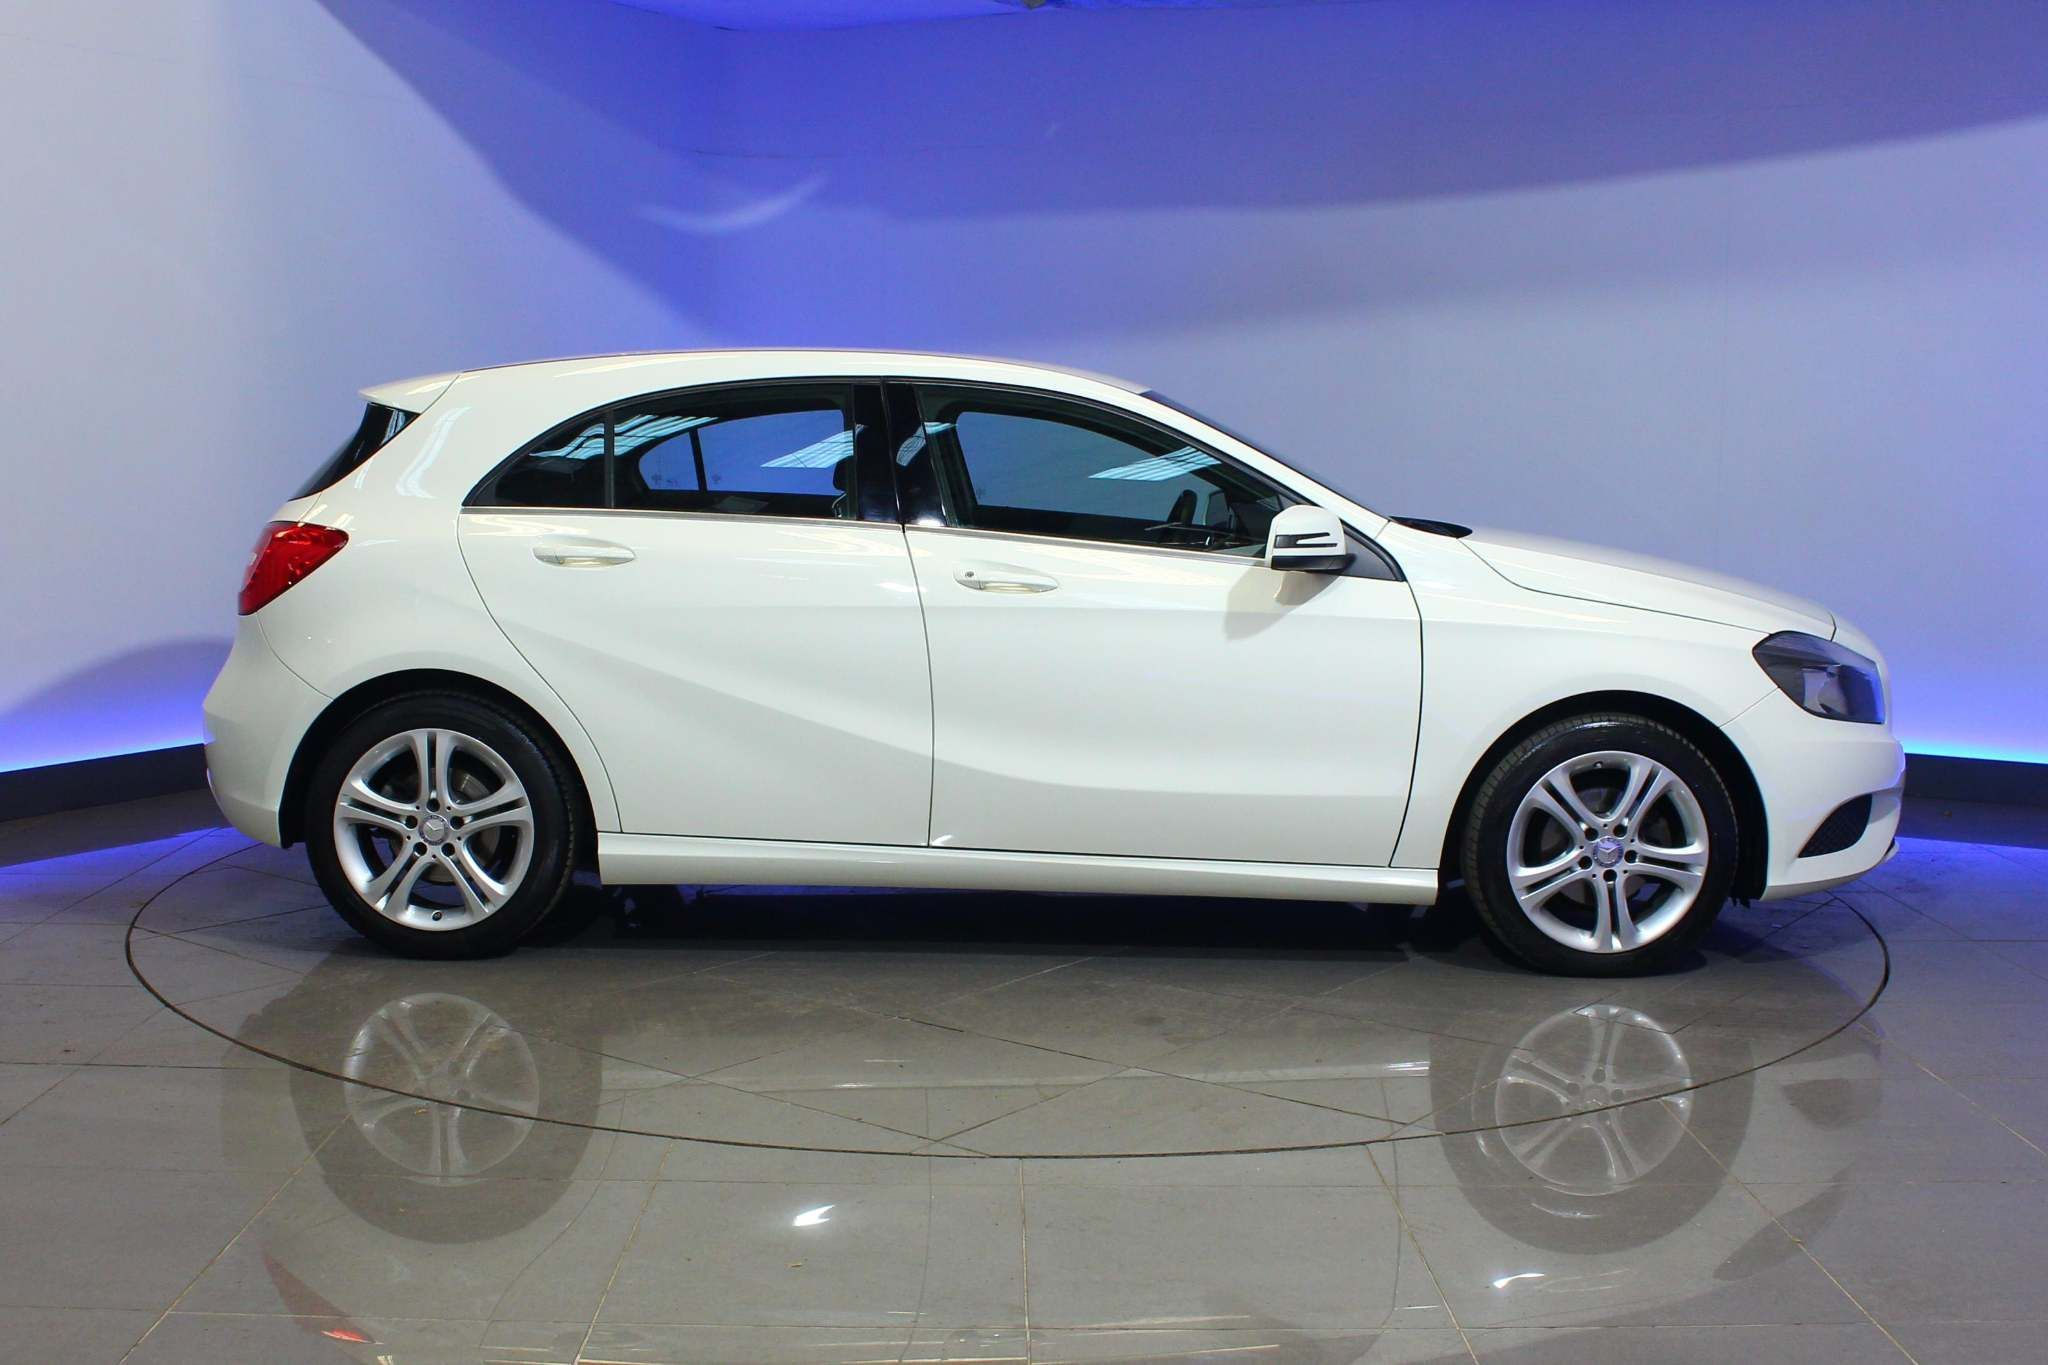 Used Mercedes-Benz A Class 1.5 A180 Cdi Sport Edition 7g-Dct 5dr (e6)